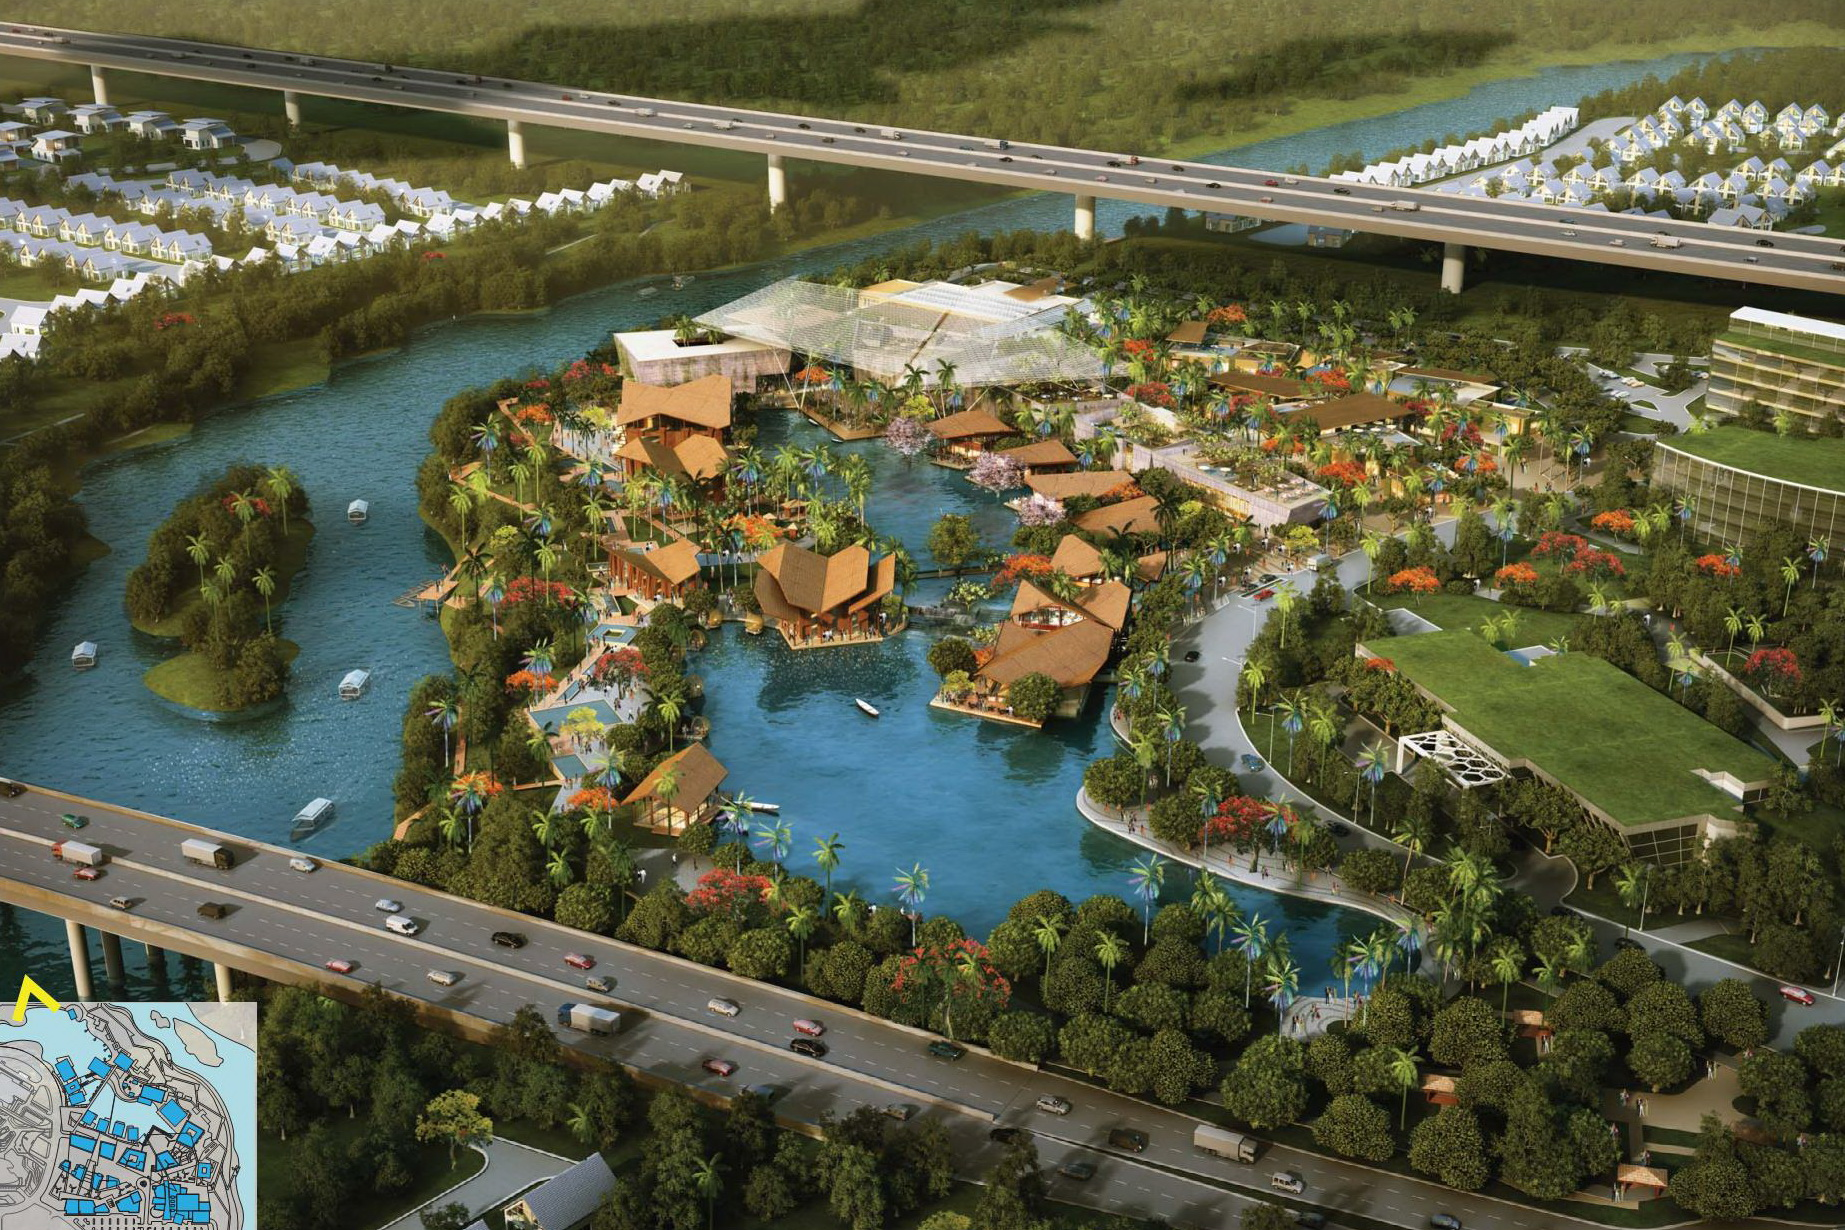 This project was a concept design for BSD City in Tangerang, Indonesia.